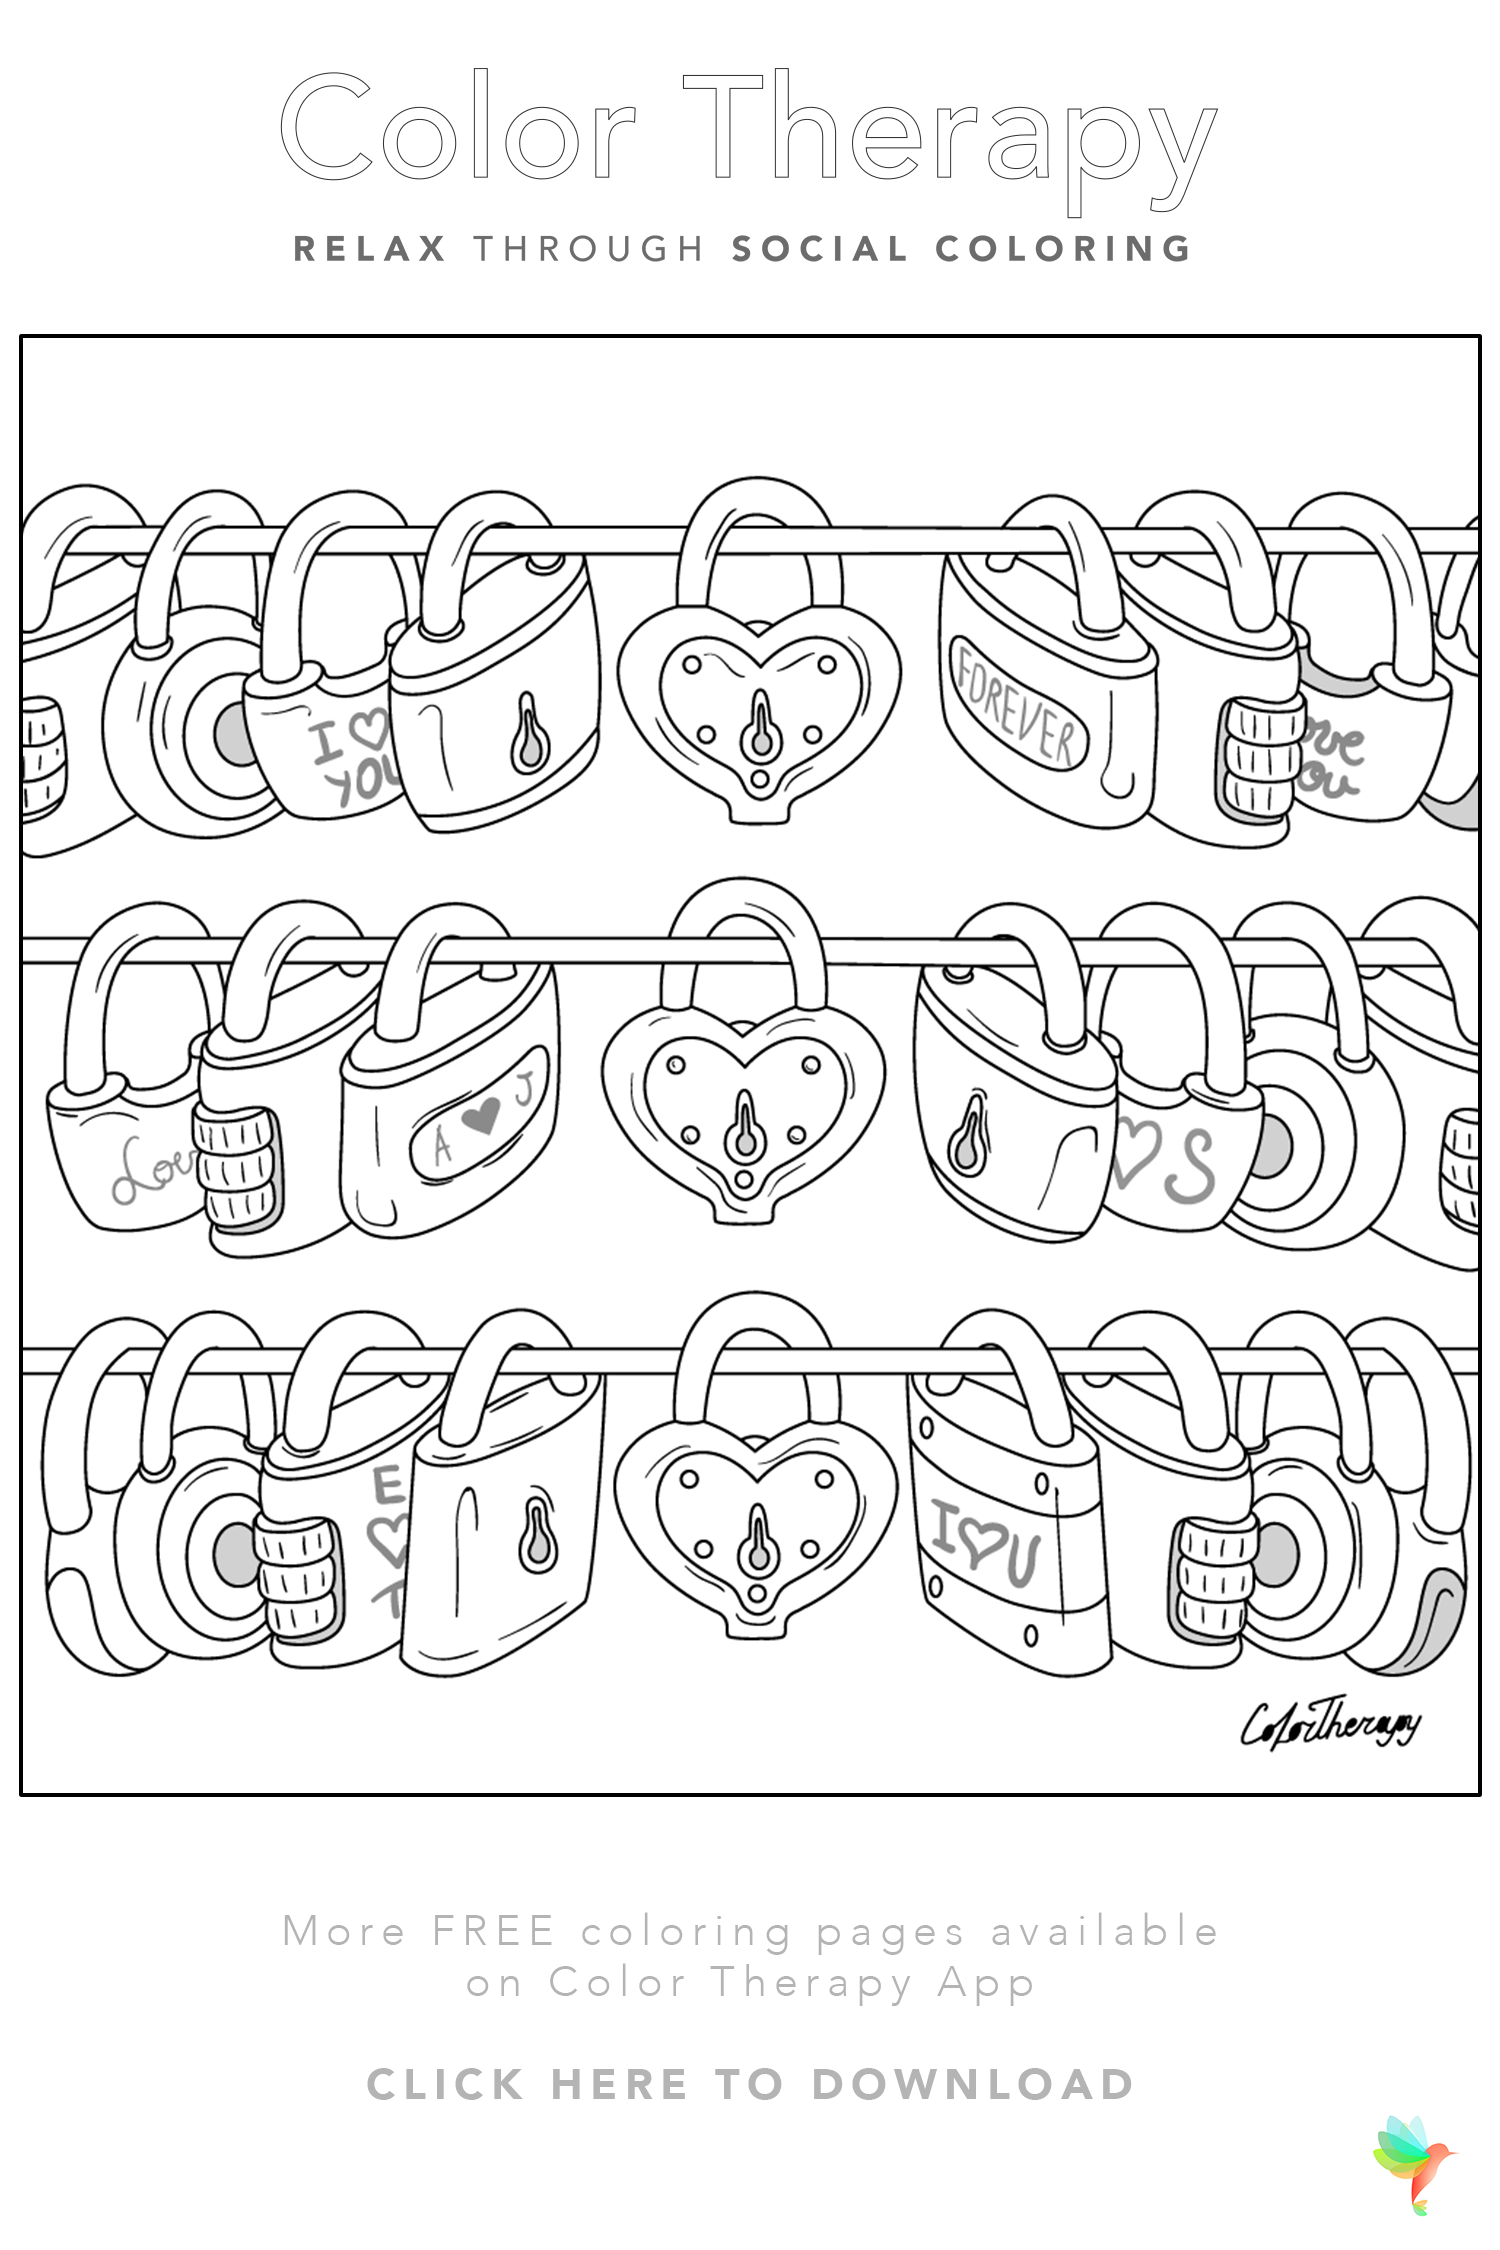 Color Therapy Gift Of The Day Free Coloring Template Free Coloring Pages Coloring Pages Printable Coloring Pages